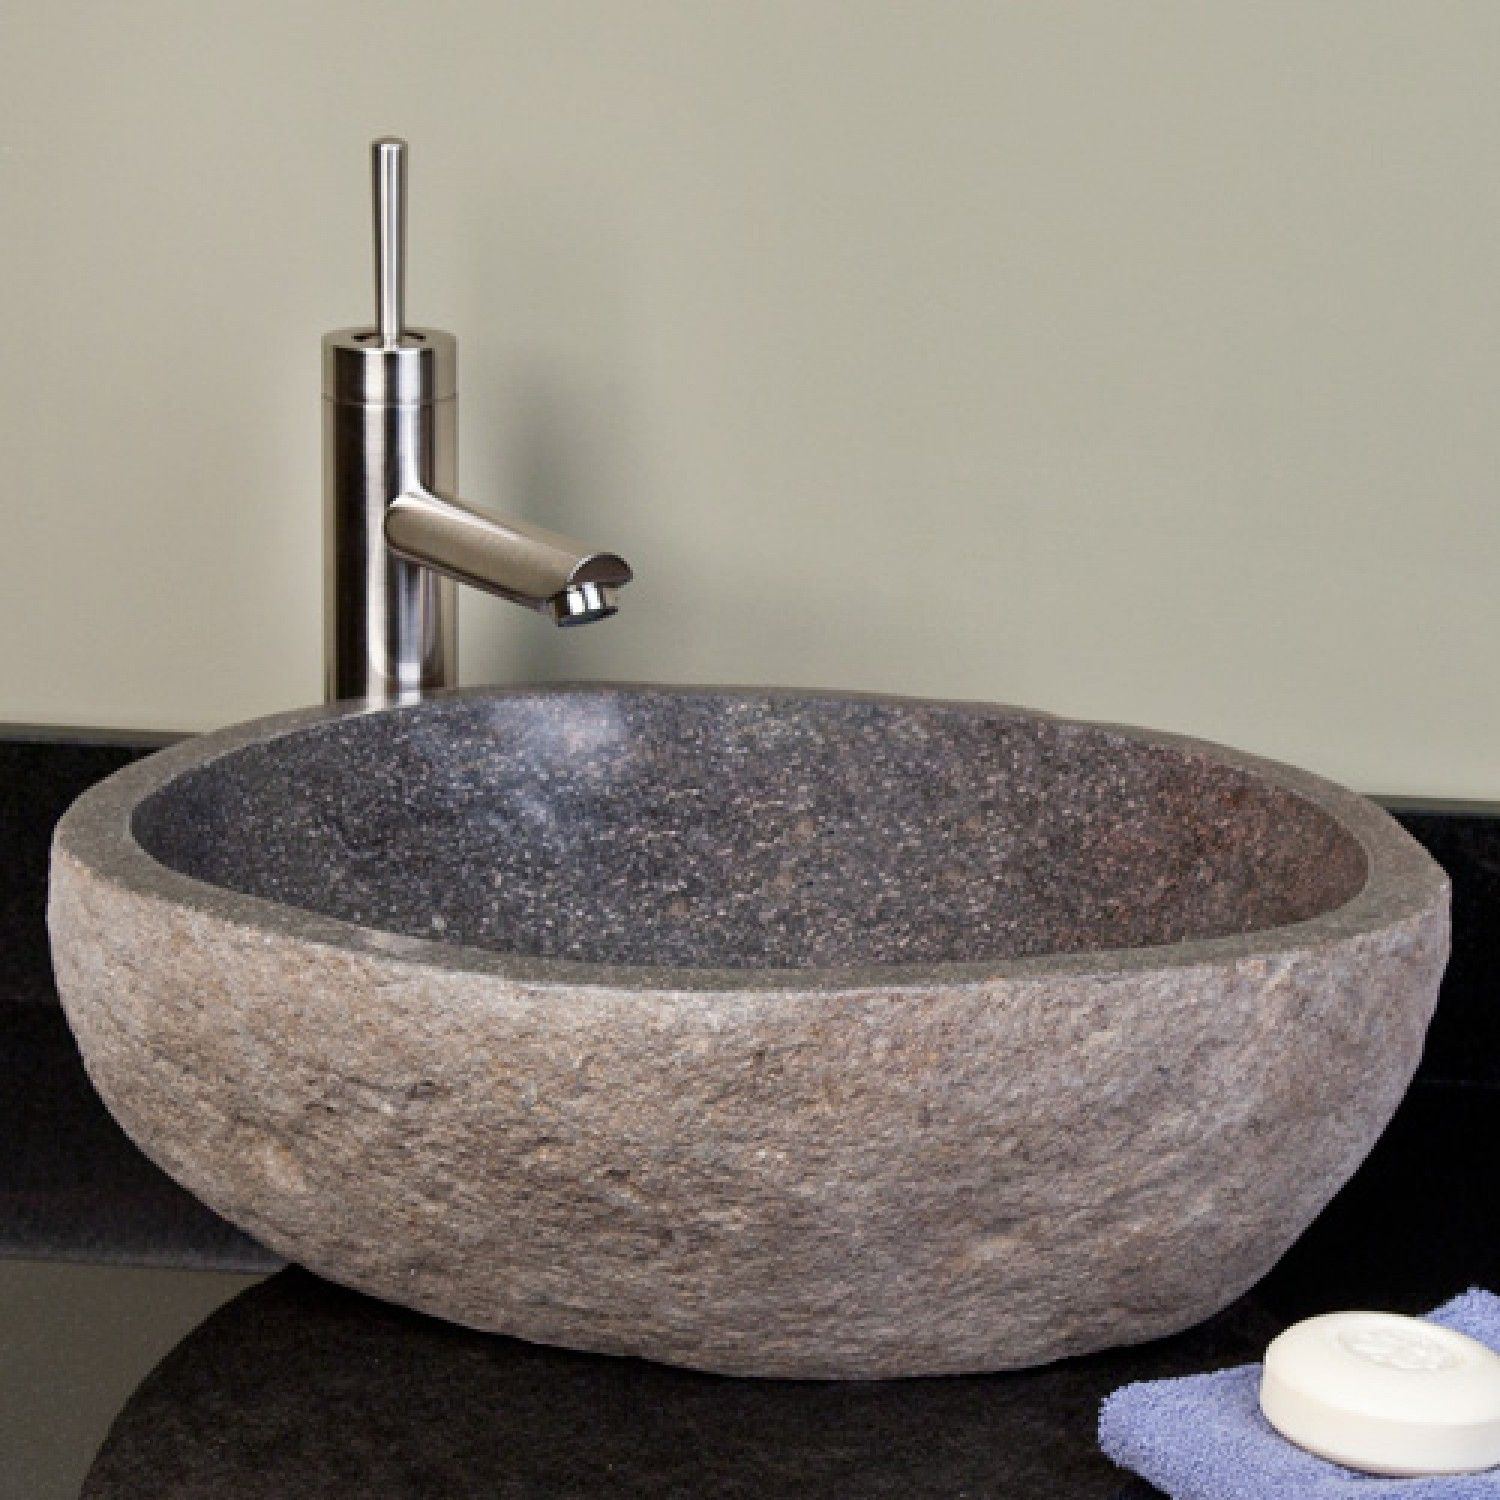 stone bowl sinks bathroom gray river vessel sink vessel sinks 20687